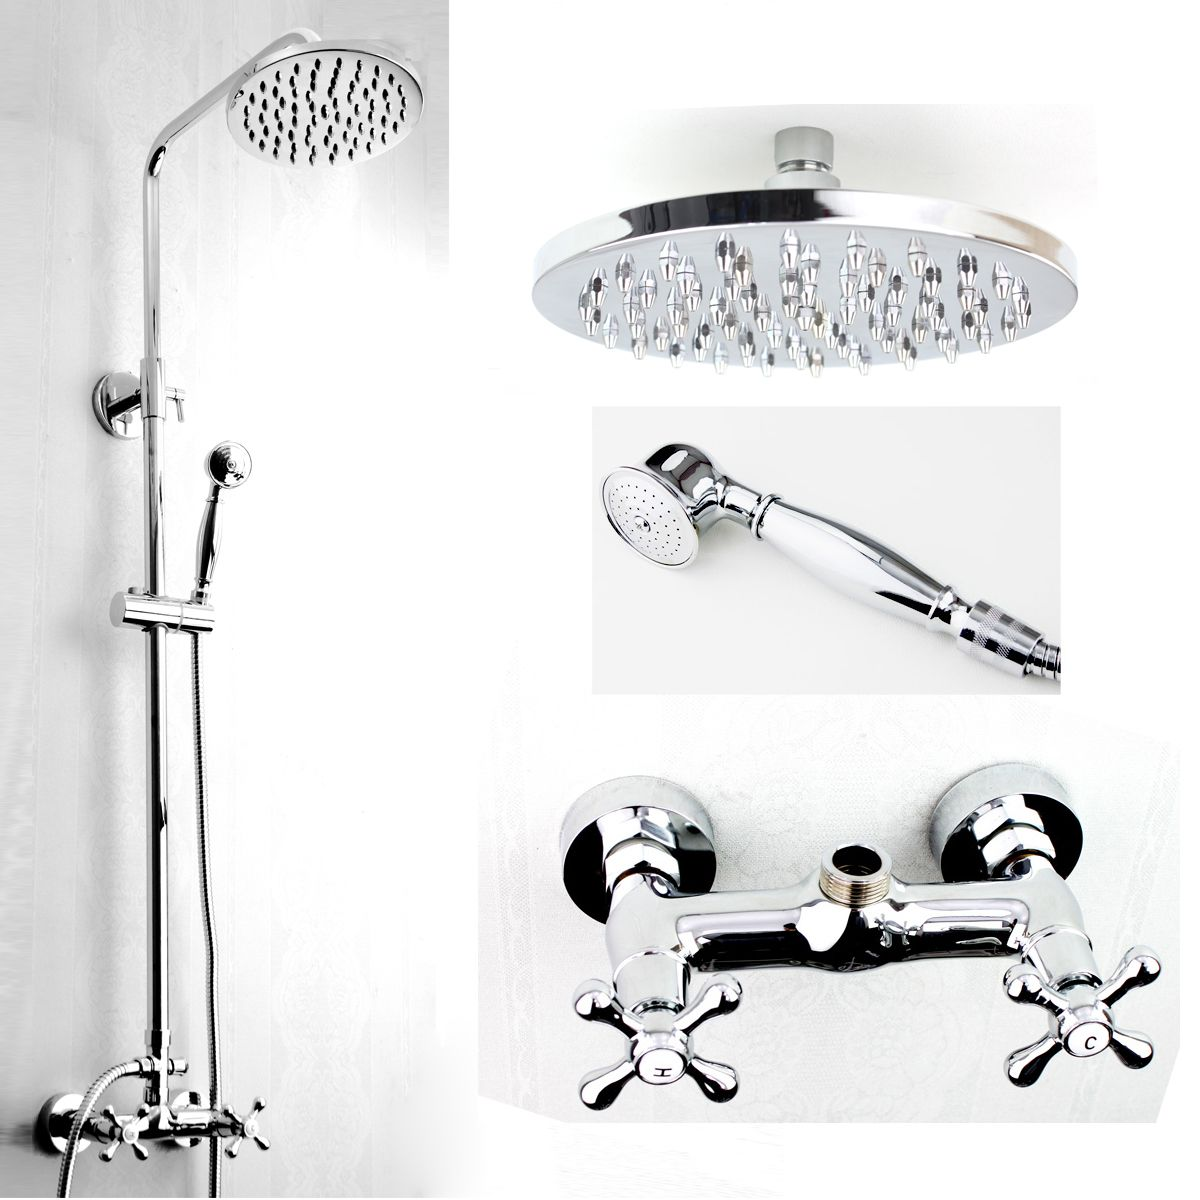 Two Handles Wall Mounted Rain Shower Faucet Mixer Valve Set YL04 ...